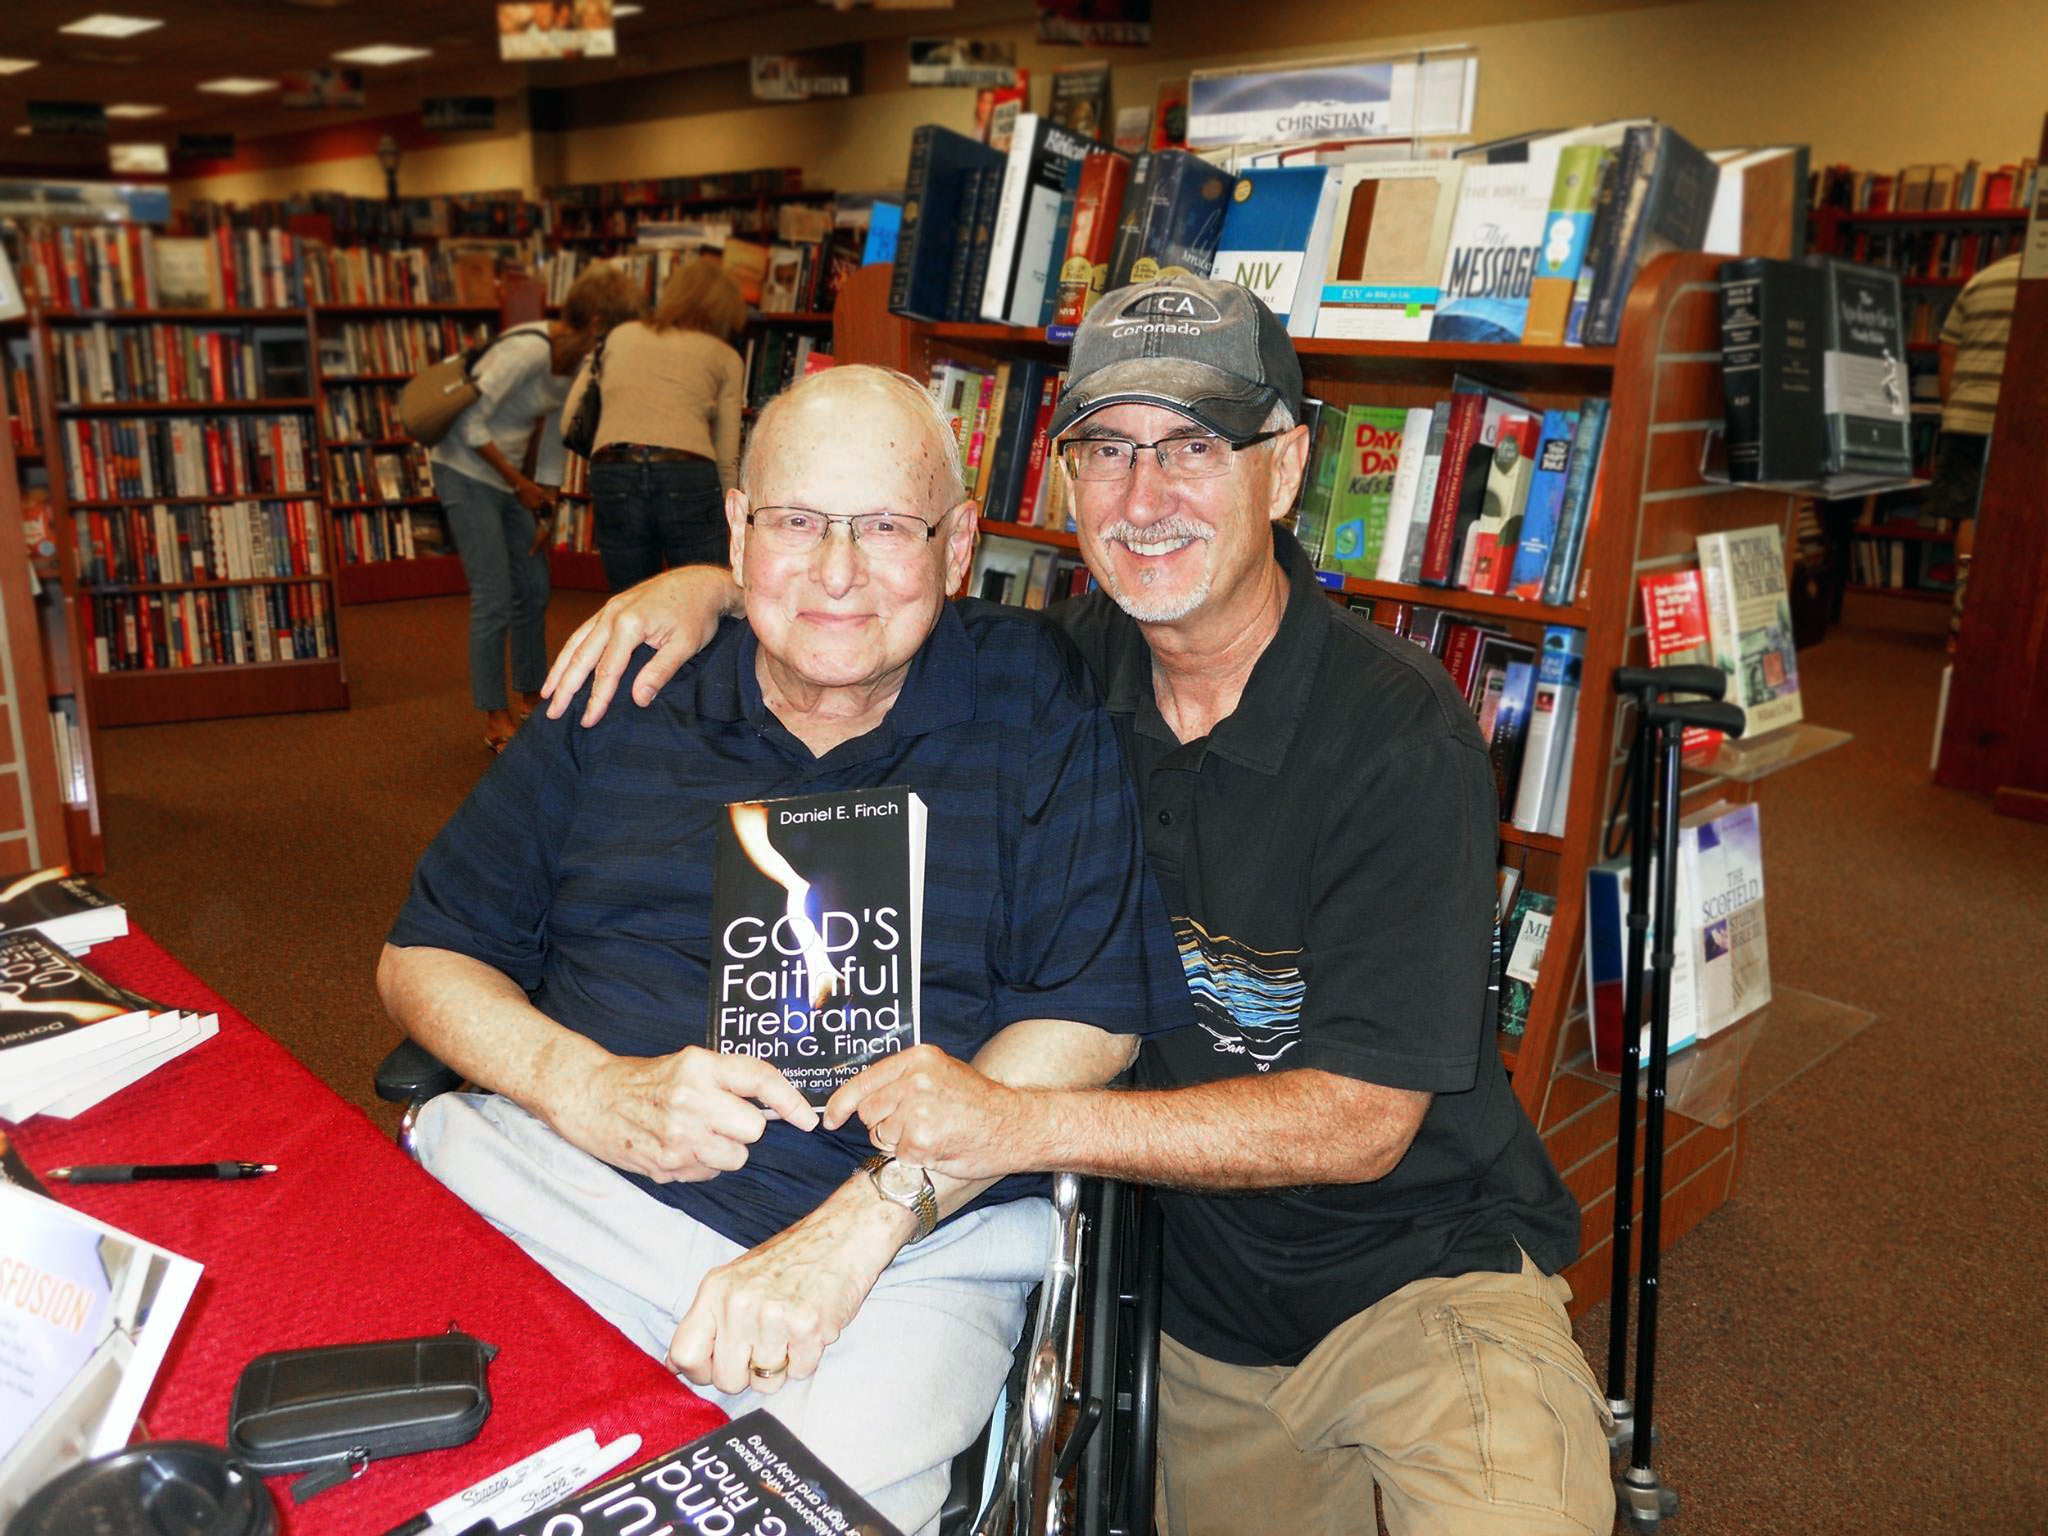 Dan Finch & I at his book release last year.